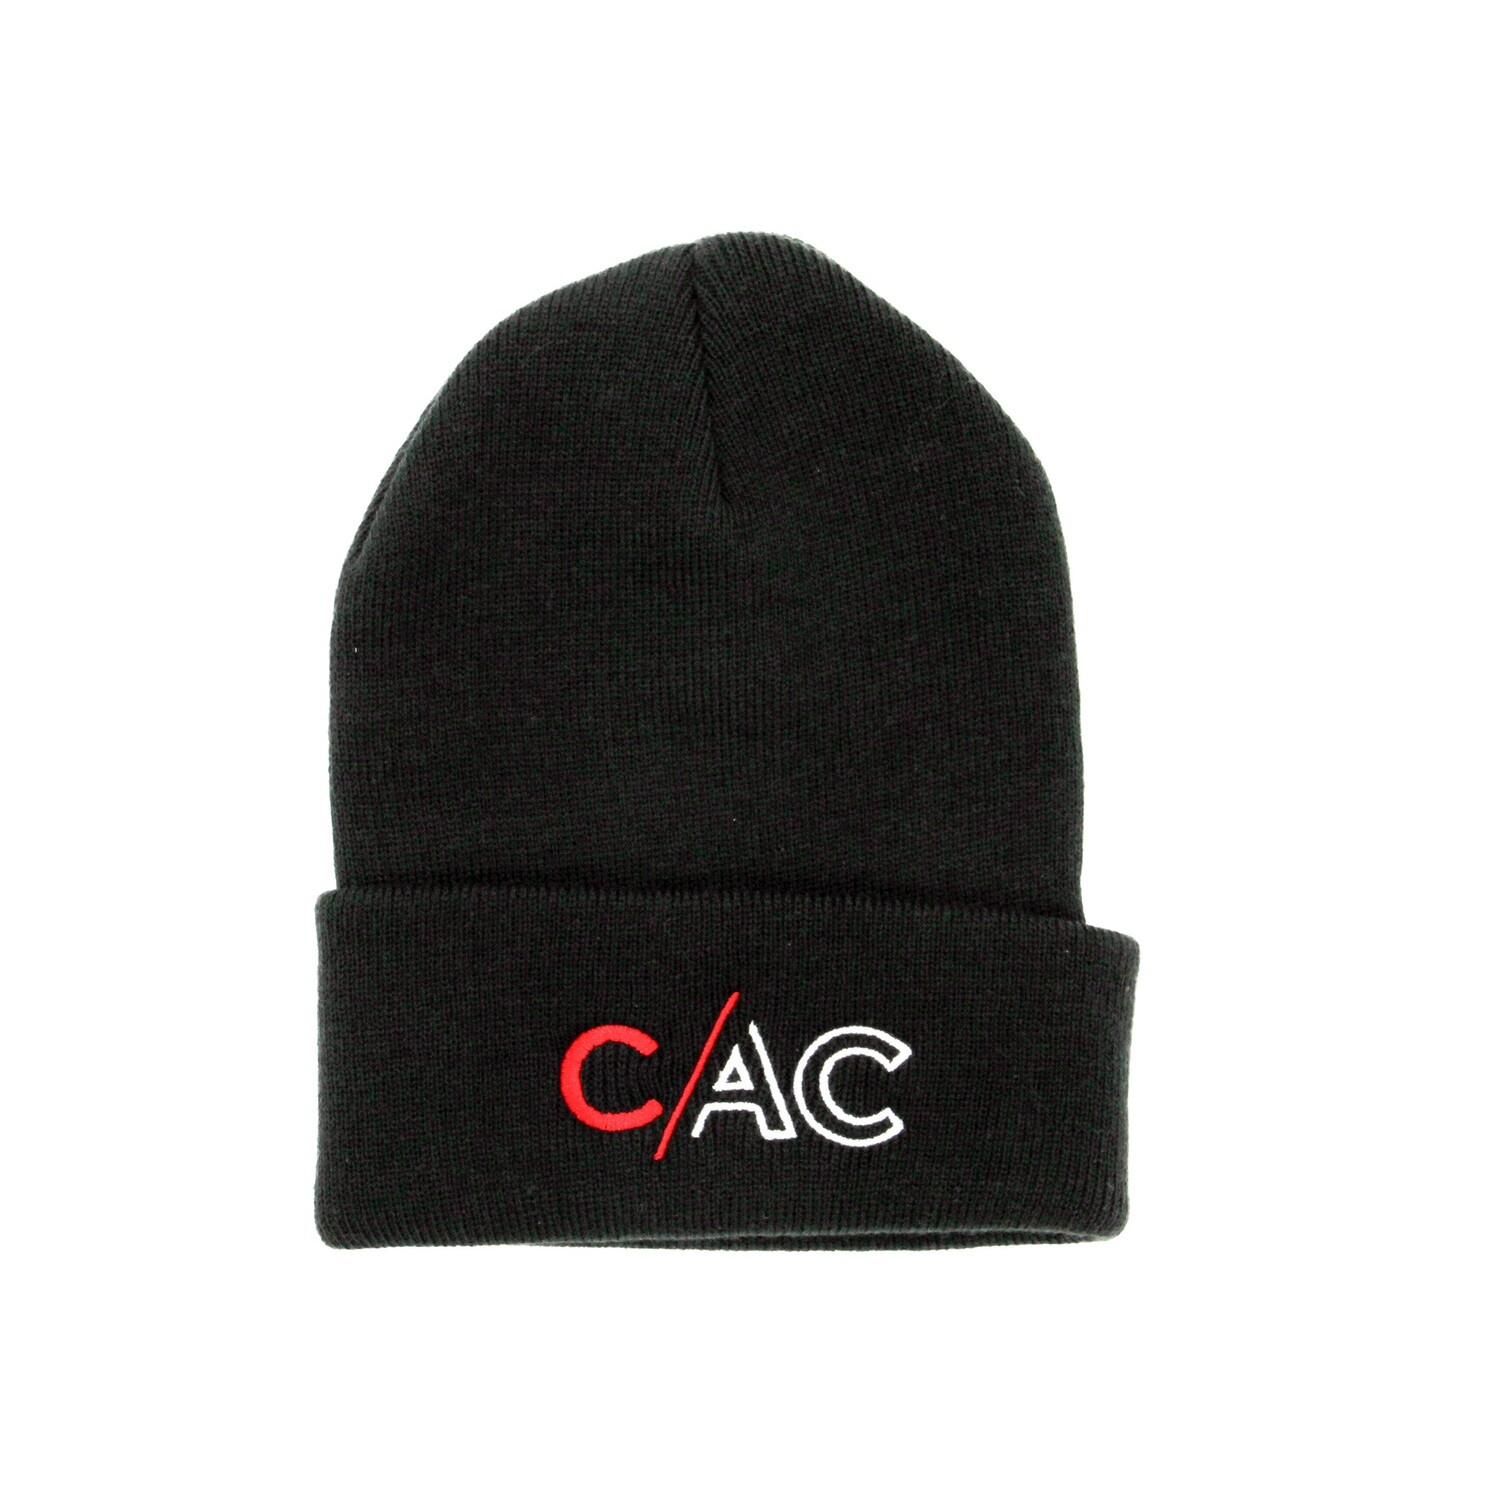 CAC Knit Hat